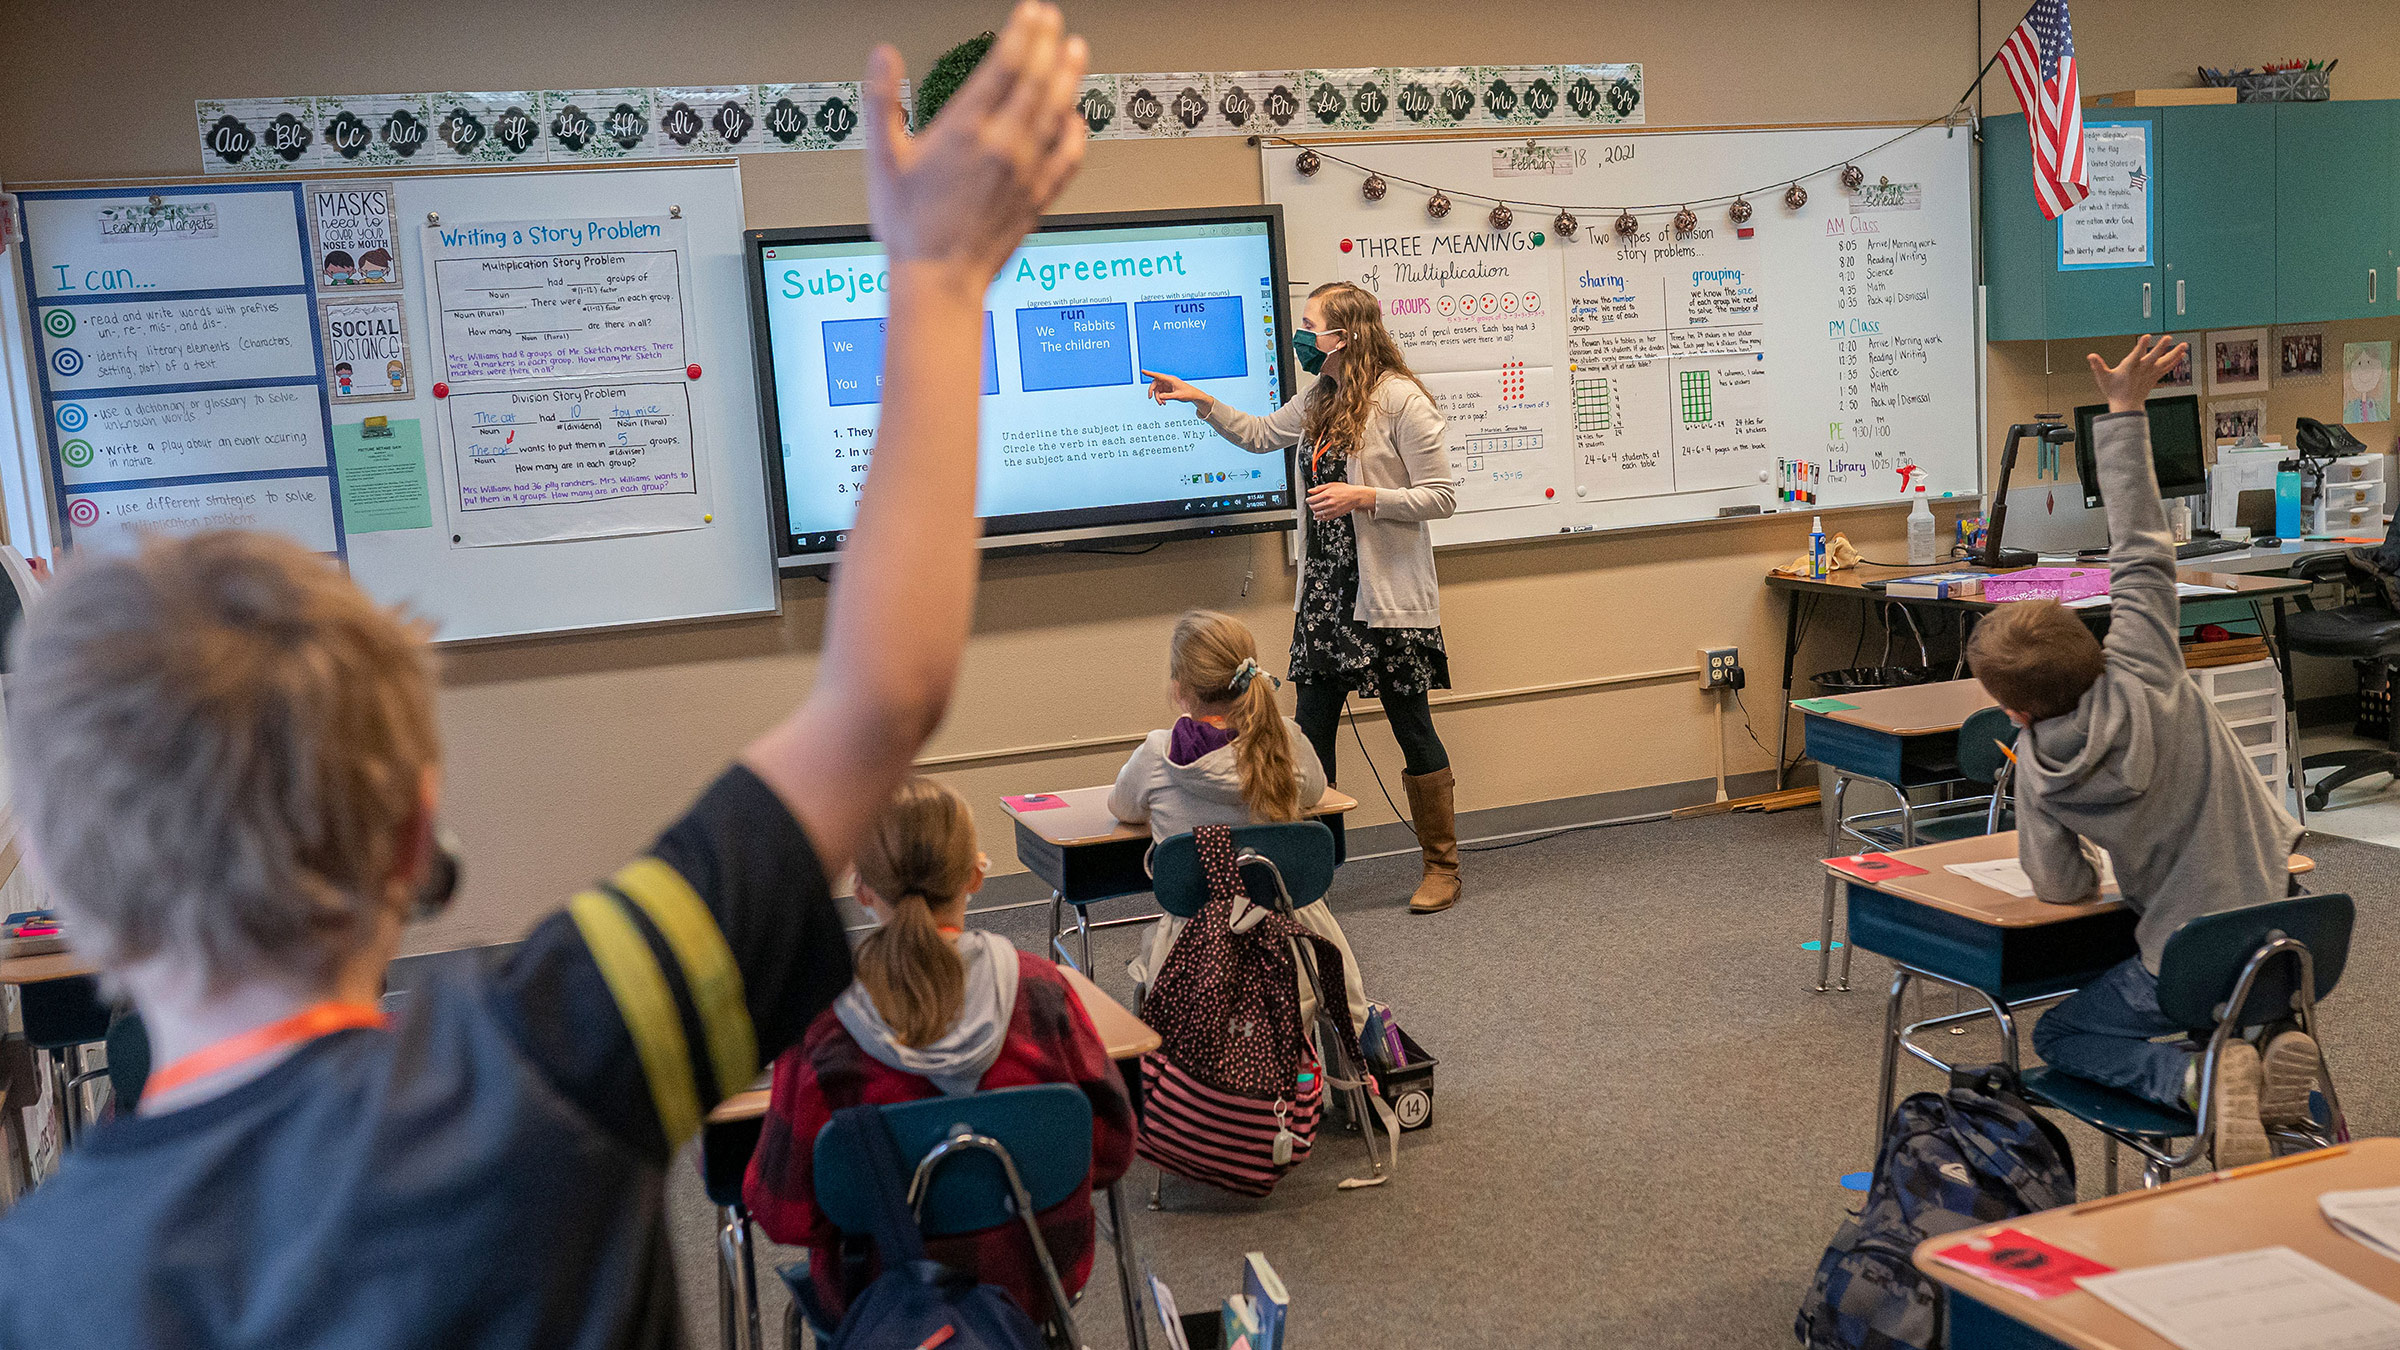 Third grade students attend class at Green Mountain School on February 18, in Woodland, Washington.